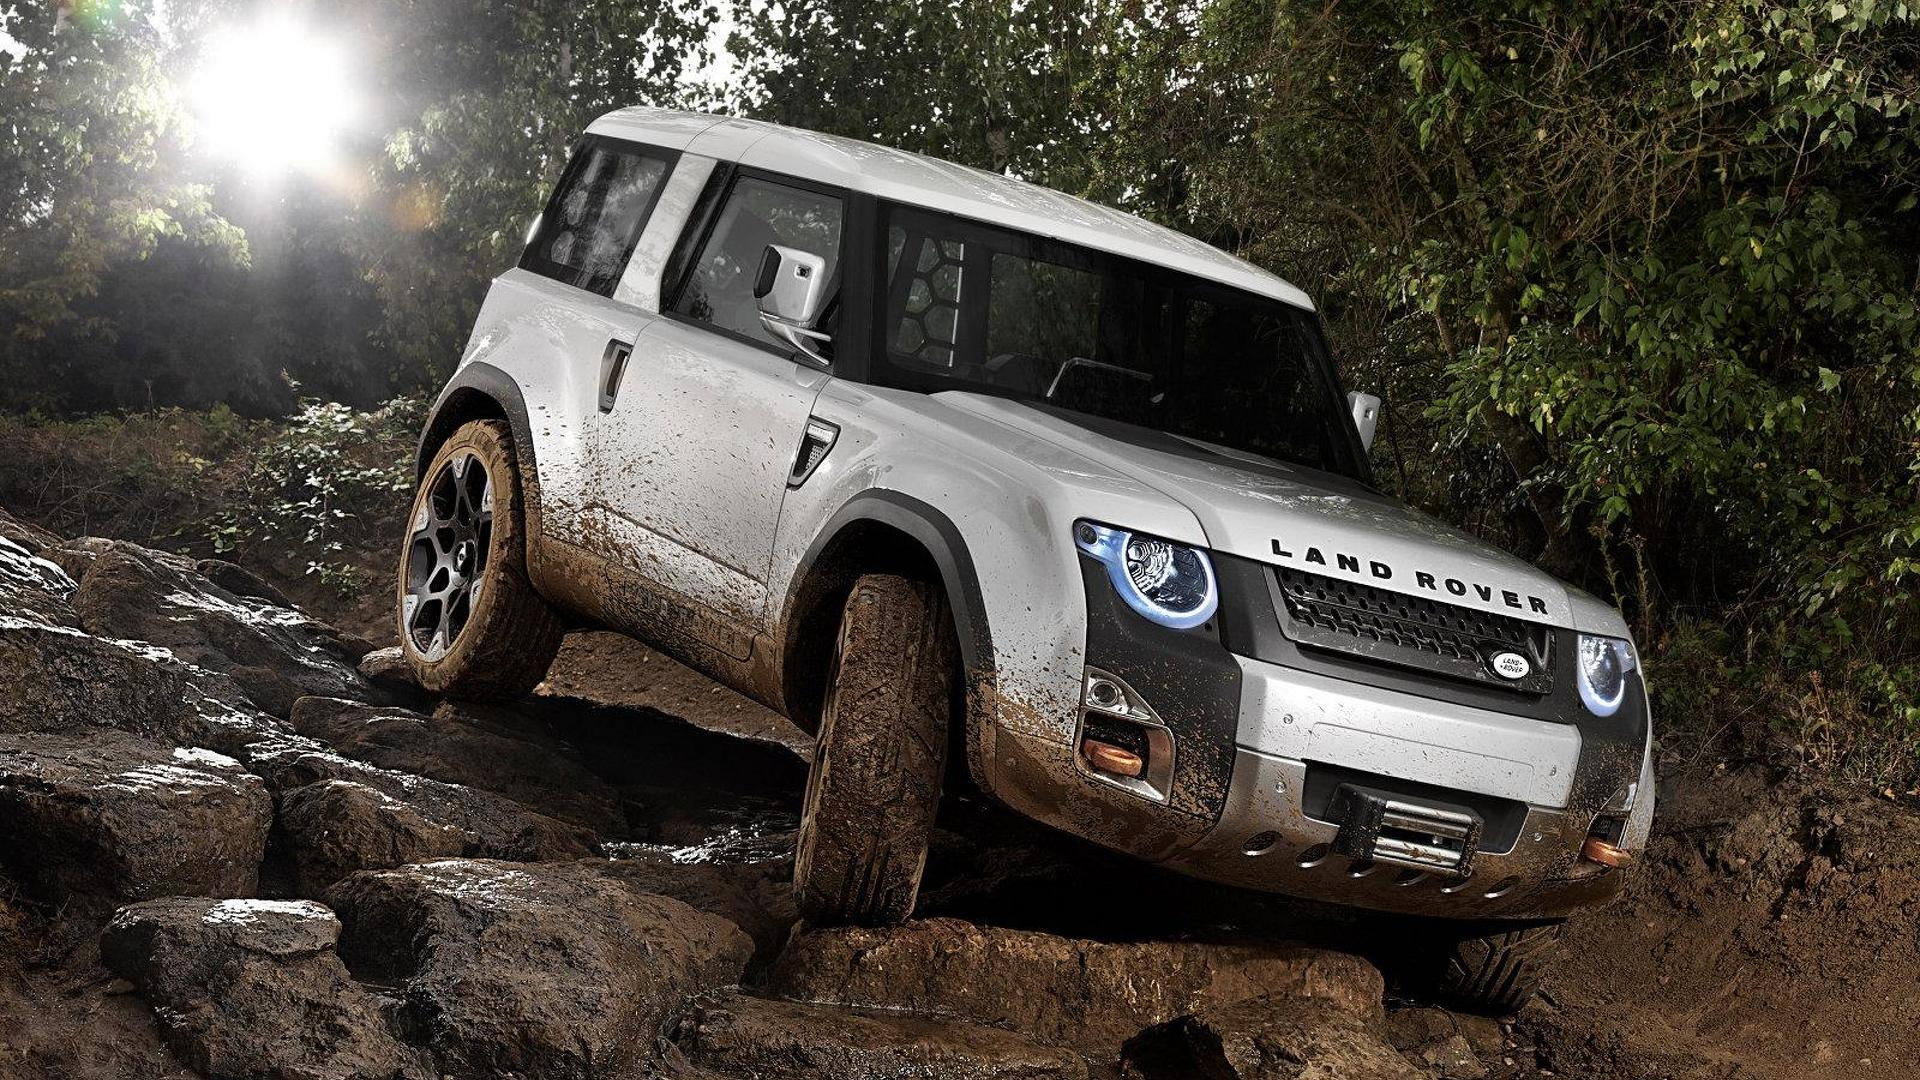 2011 land rover dc100 concept side 2 1280x960 wallpaper - Next Generation Land Rover Defender Reportedly Set For 2018 Launch Will Be Sold In Us Product 2015 03 10 10 28 47